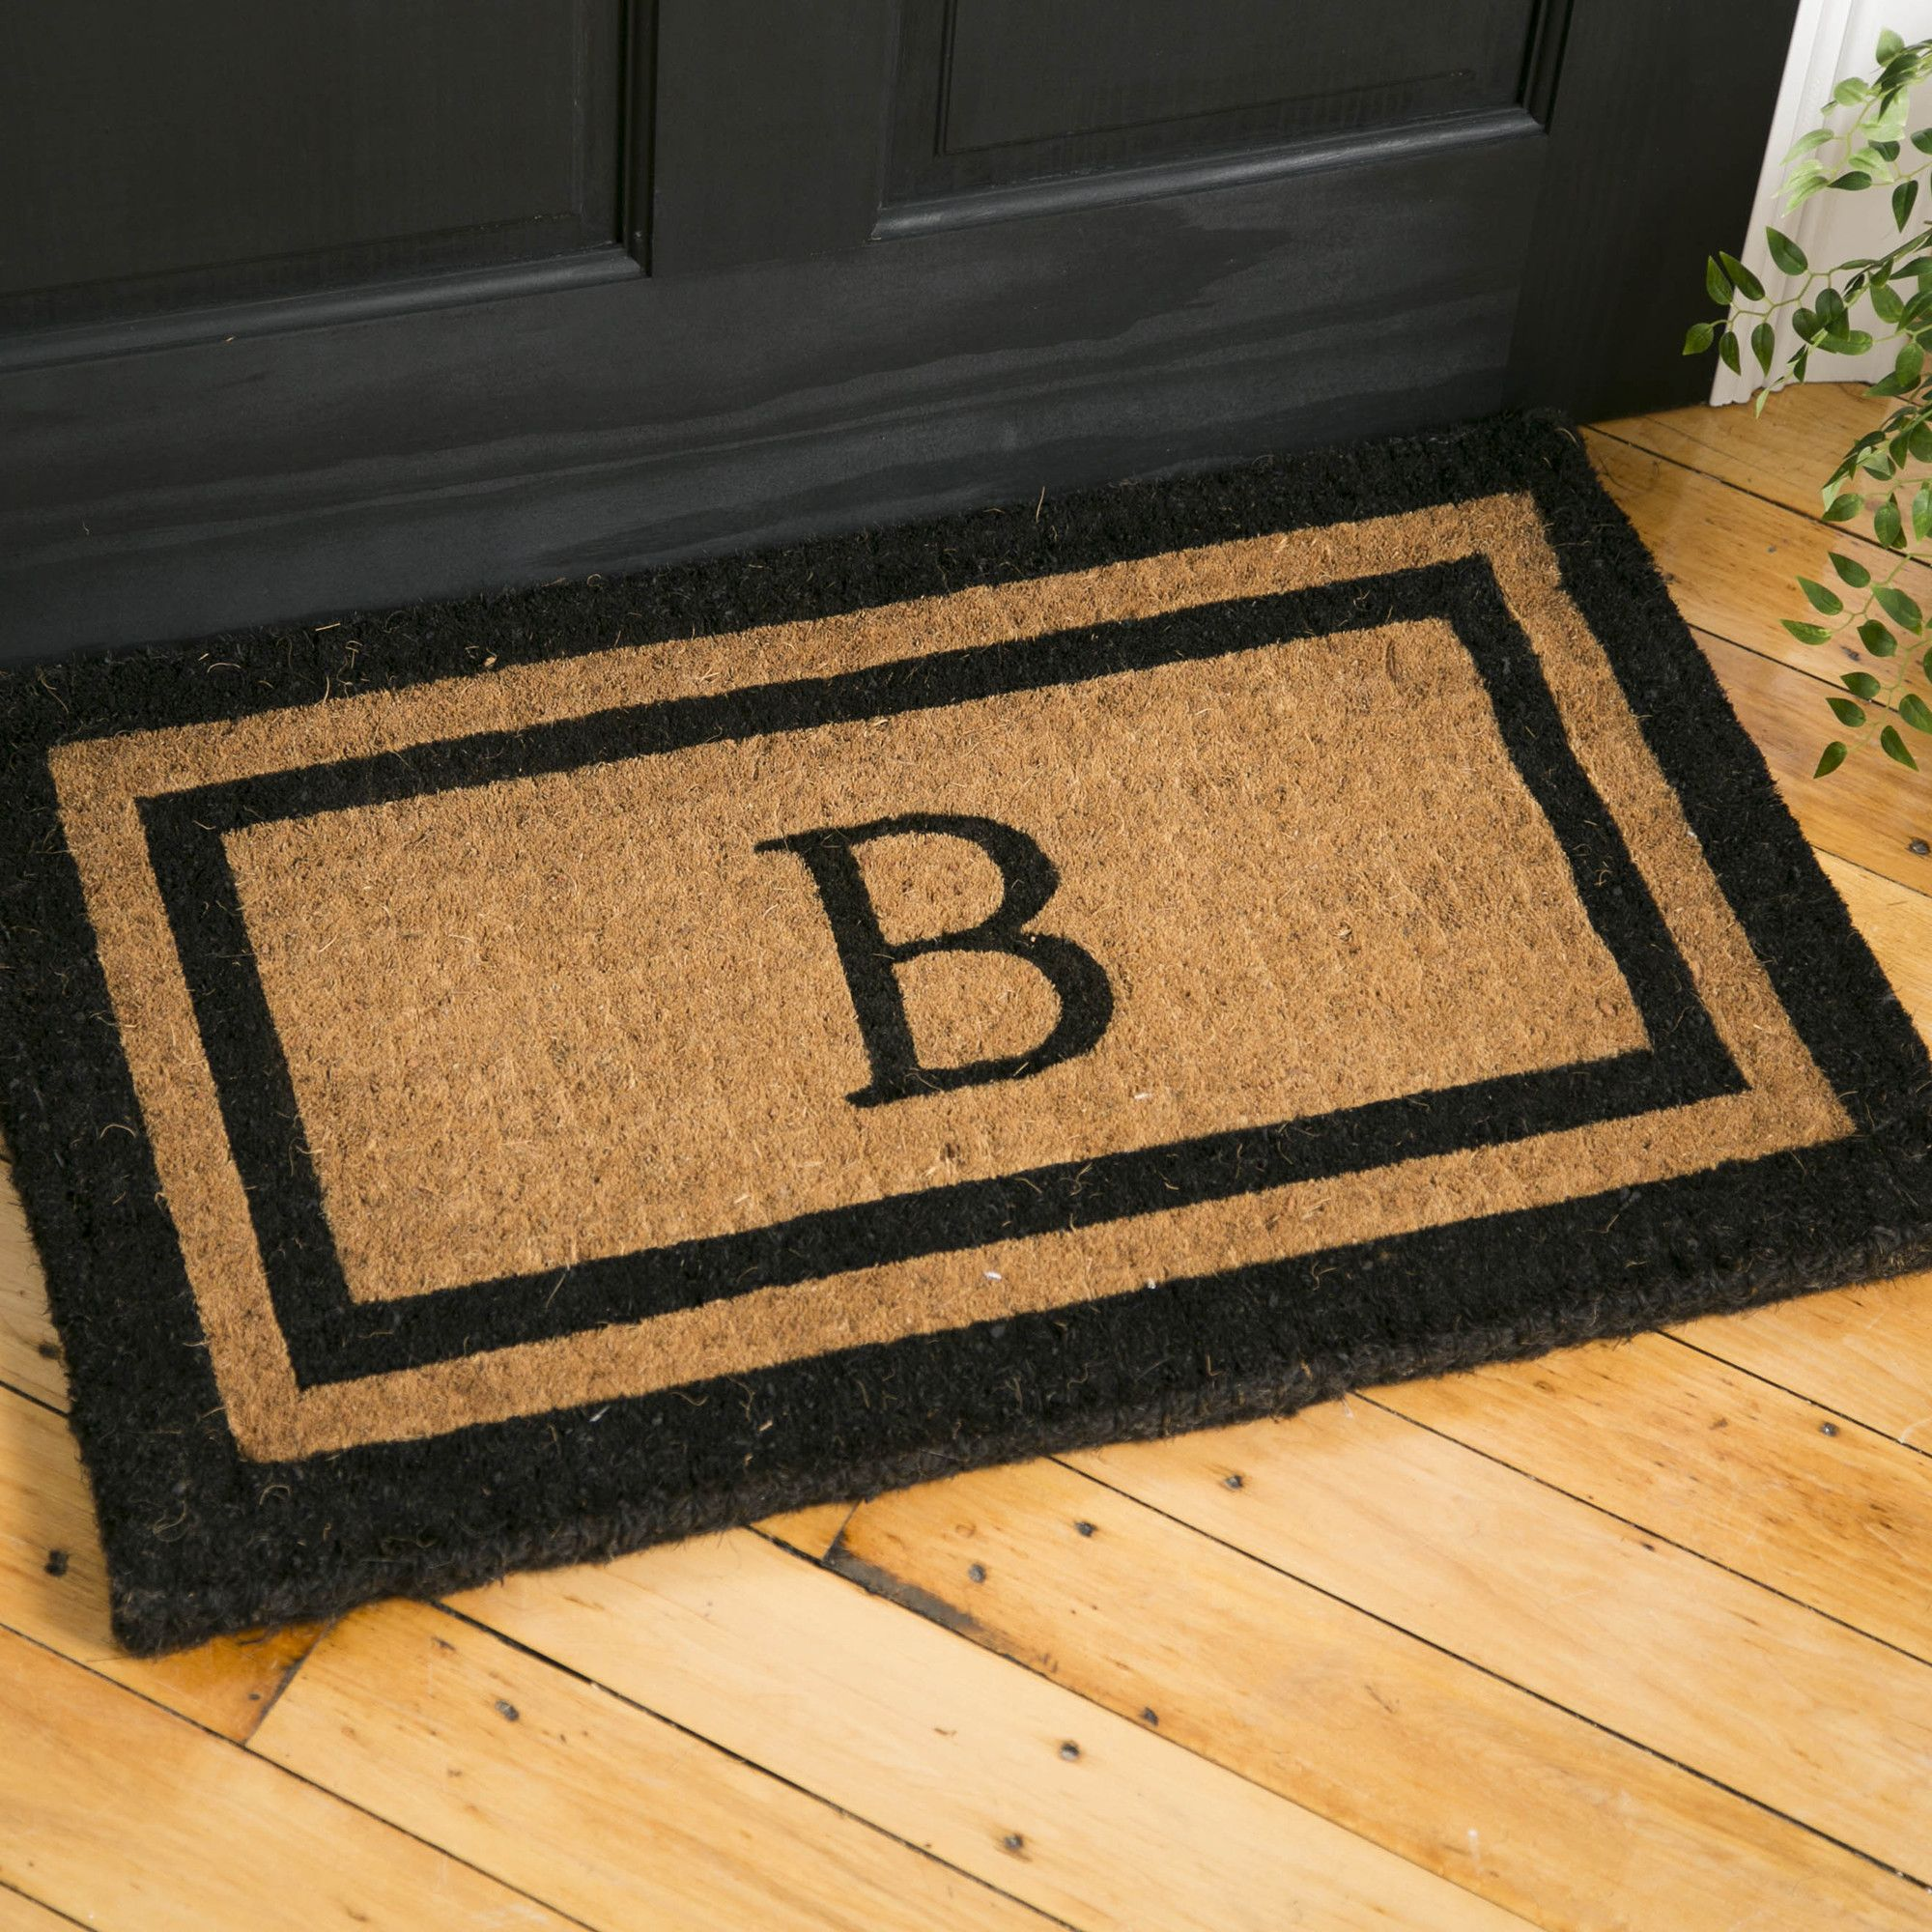 welcome rugs logos our mats office mat pin and customized law custom lawyers logo love